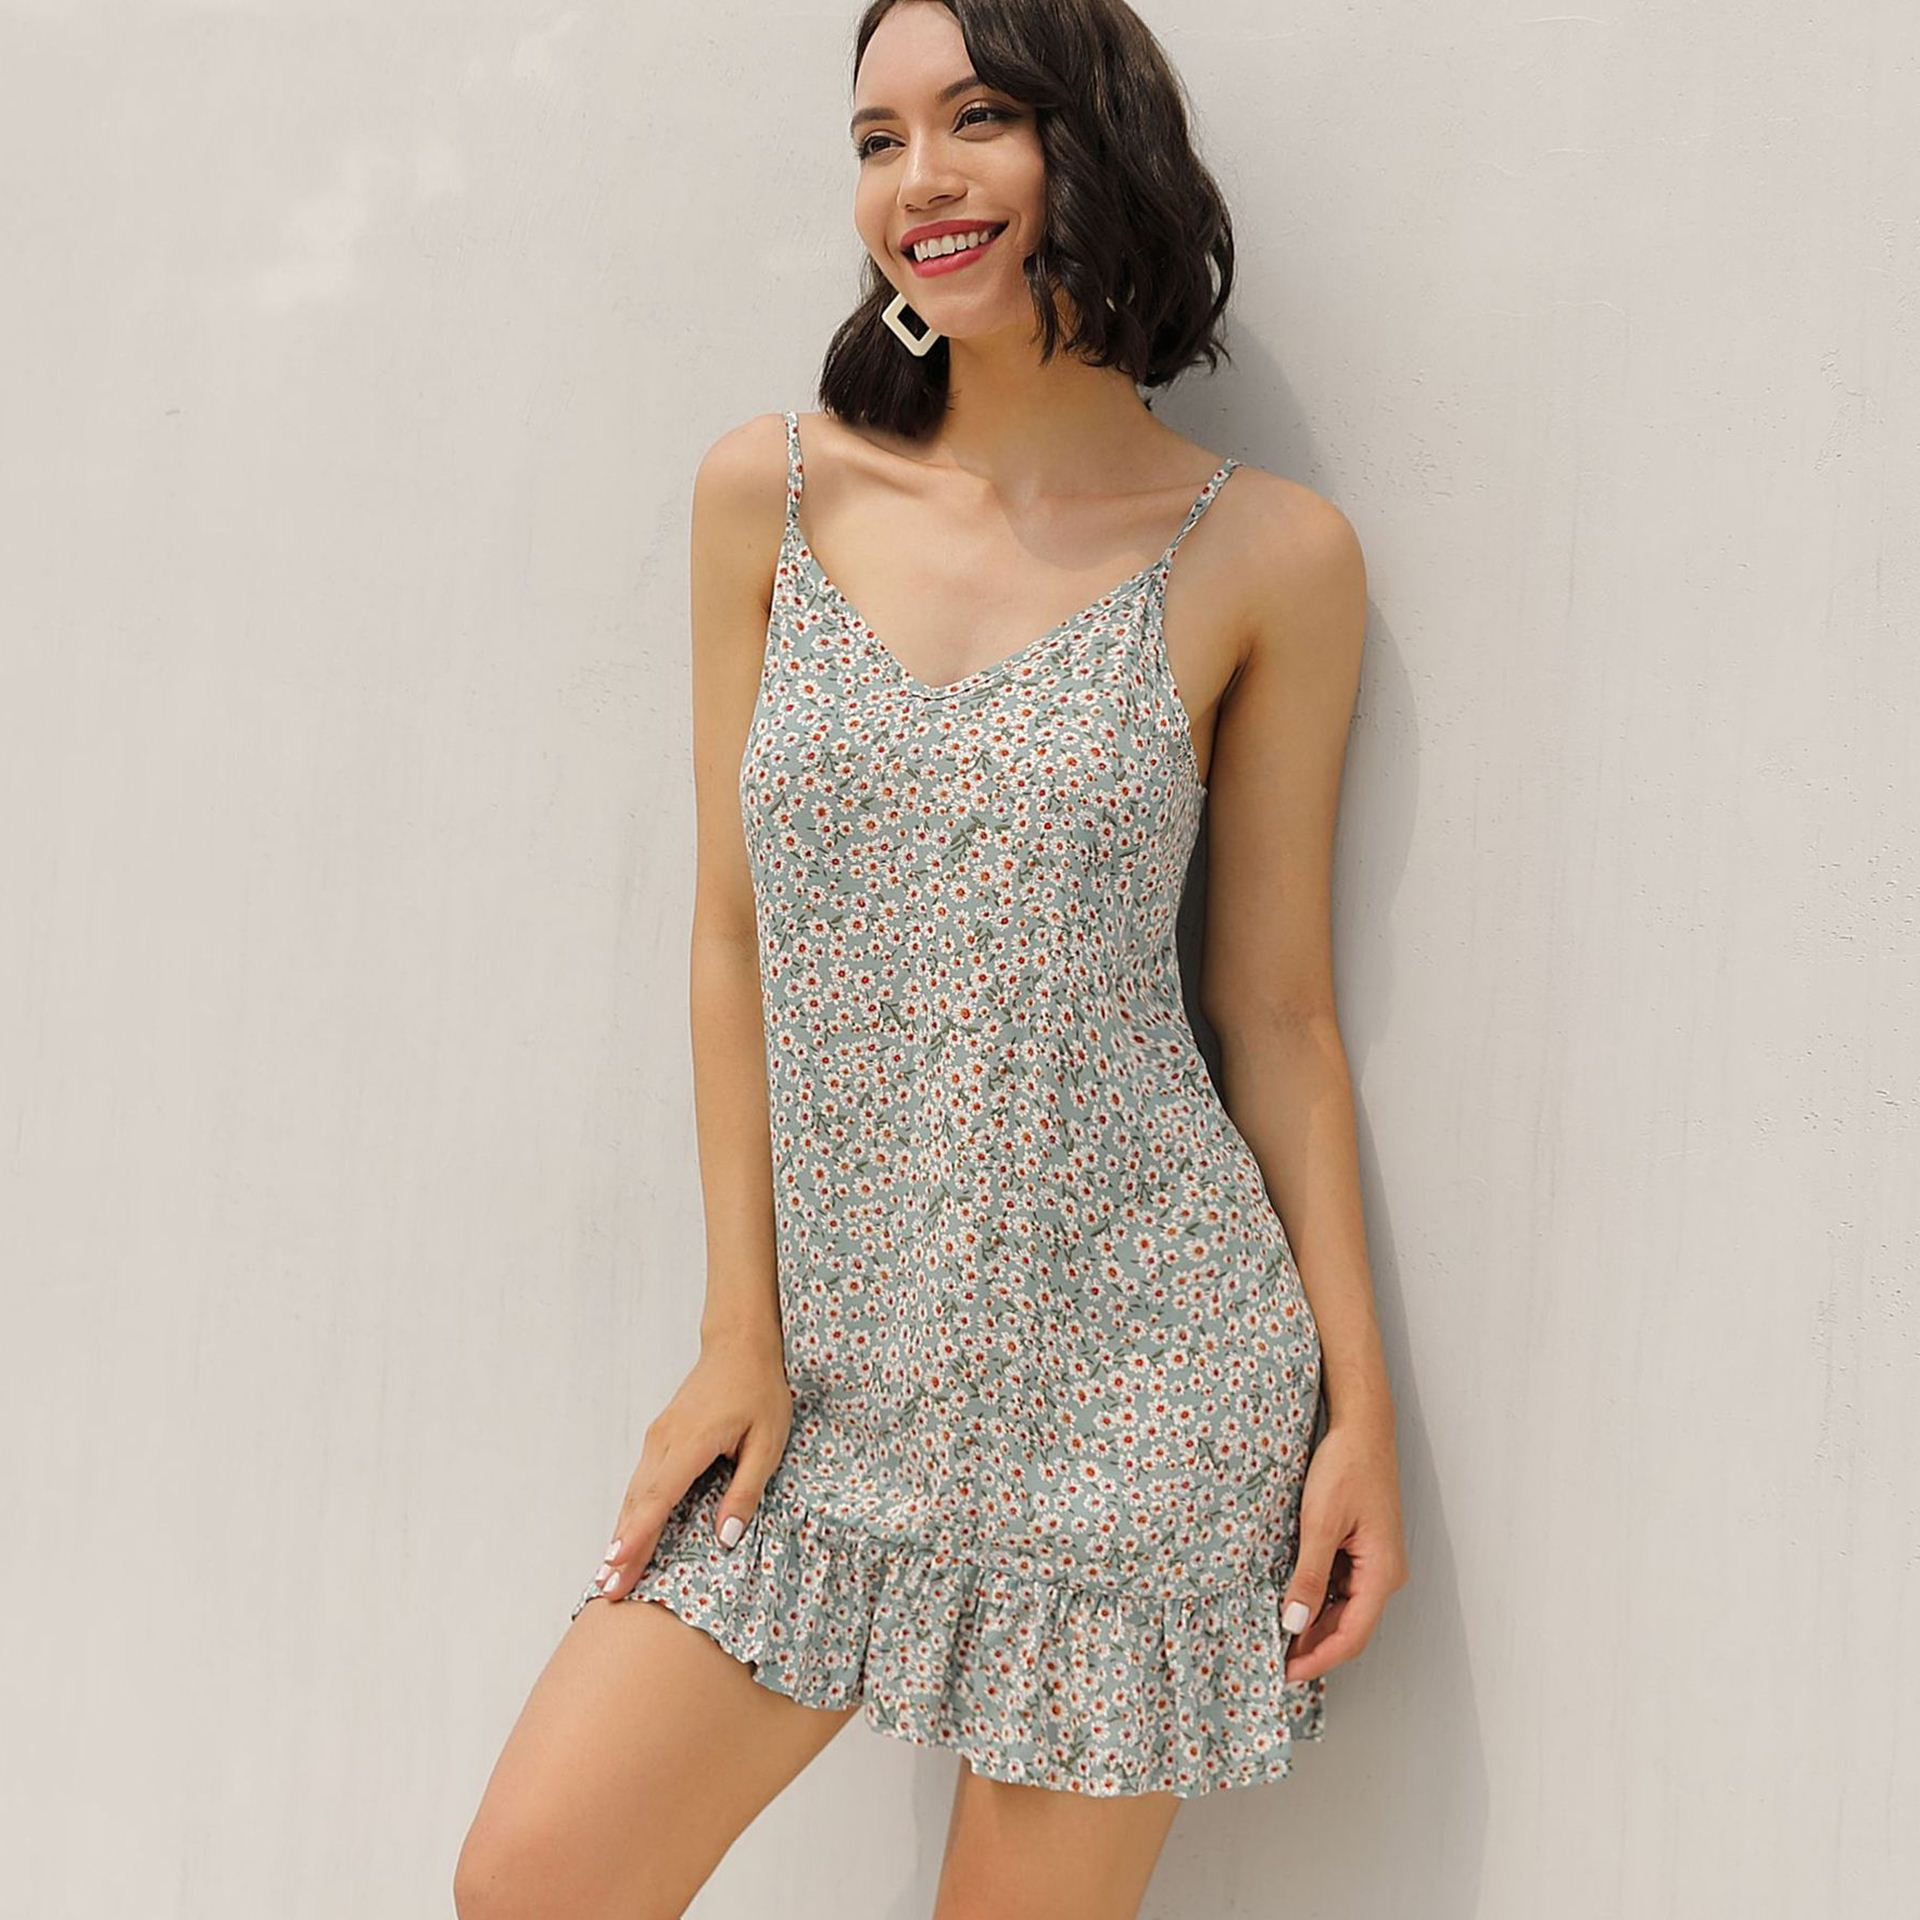 Spring and summer new style Halter ruffled sexy dress Temperament sash floral dress in Dresses from Women 39 s Clothing